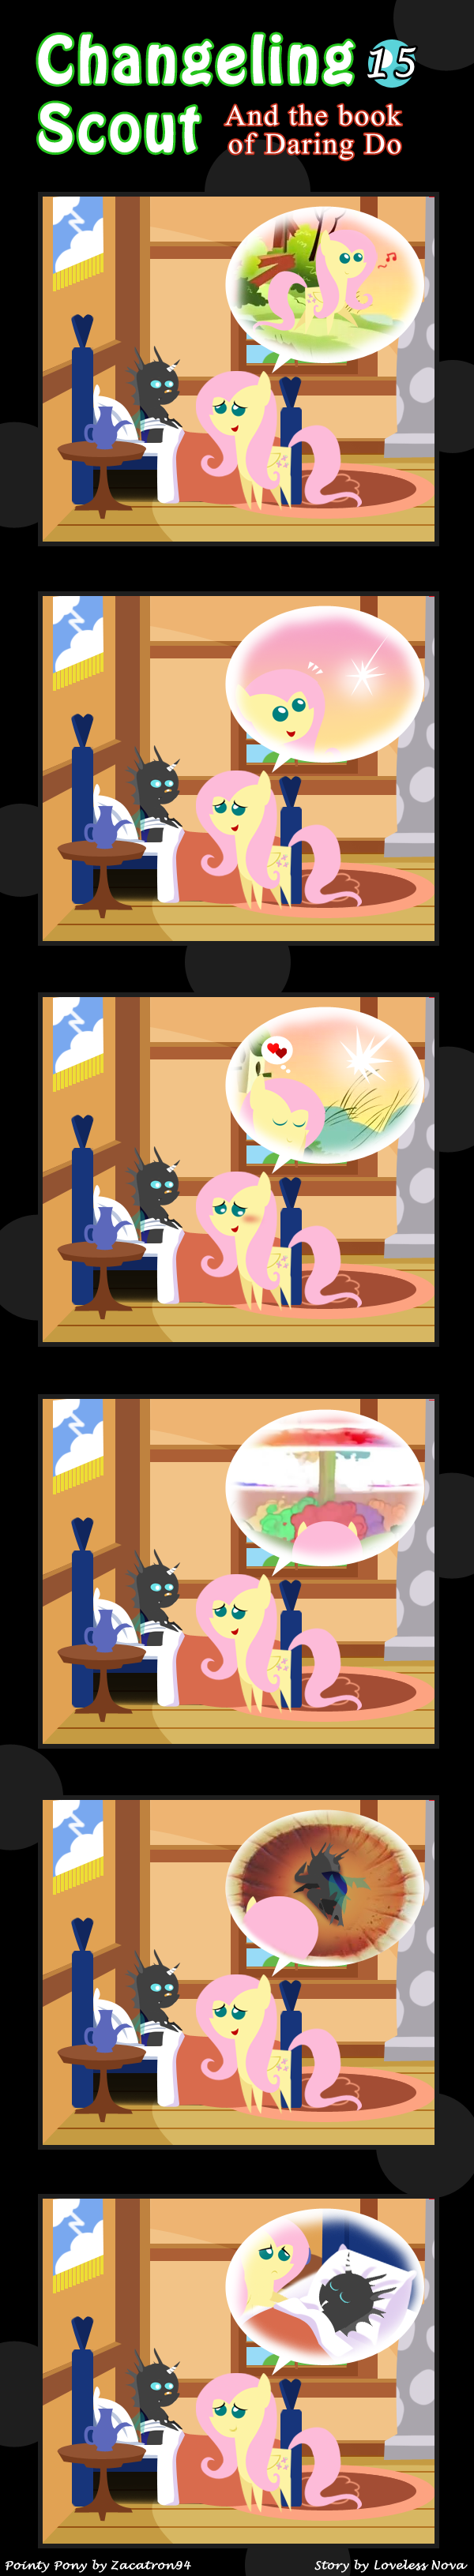 Changeling Scout And The Book Of Daring Do 15